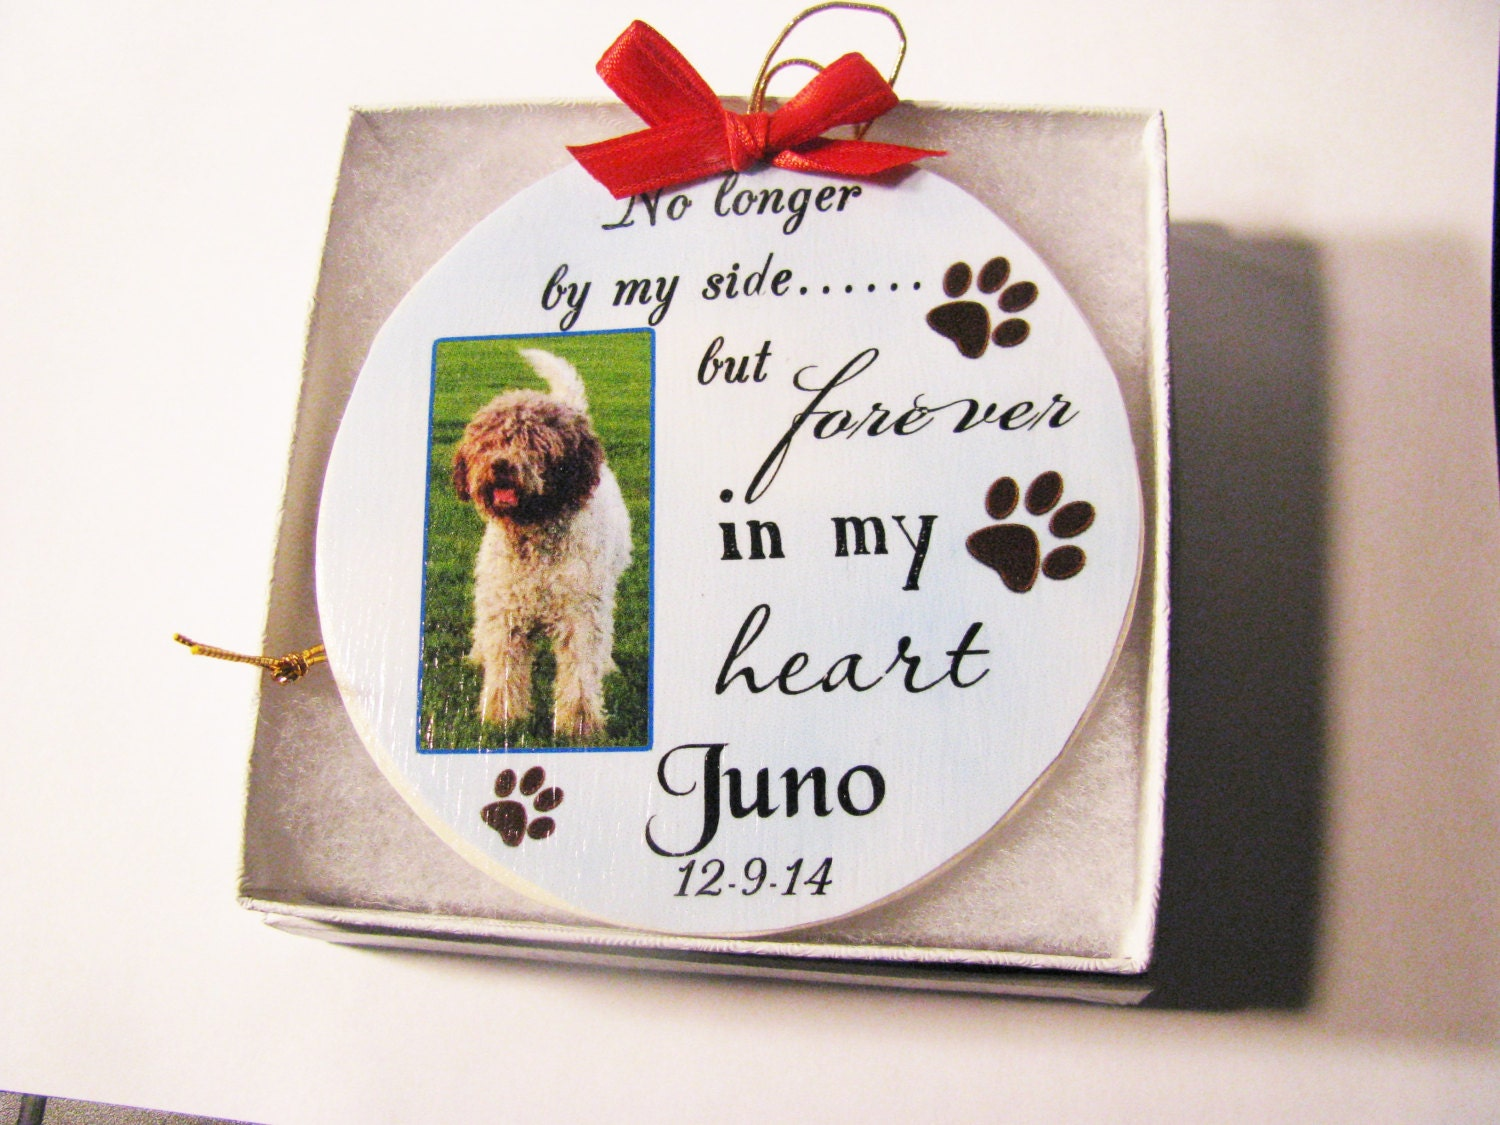 Personalized cat christmas ornaments - Pet Memorial Pet Ornament Christmas Ornament Memorial Ornament Dog Ornament Dog Memorial Personalized Ornament Cat Ornament